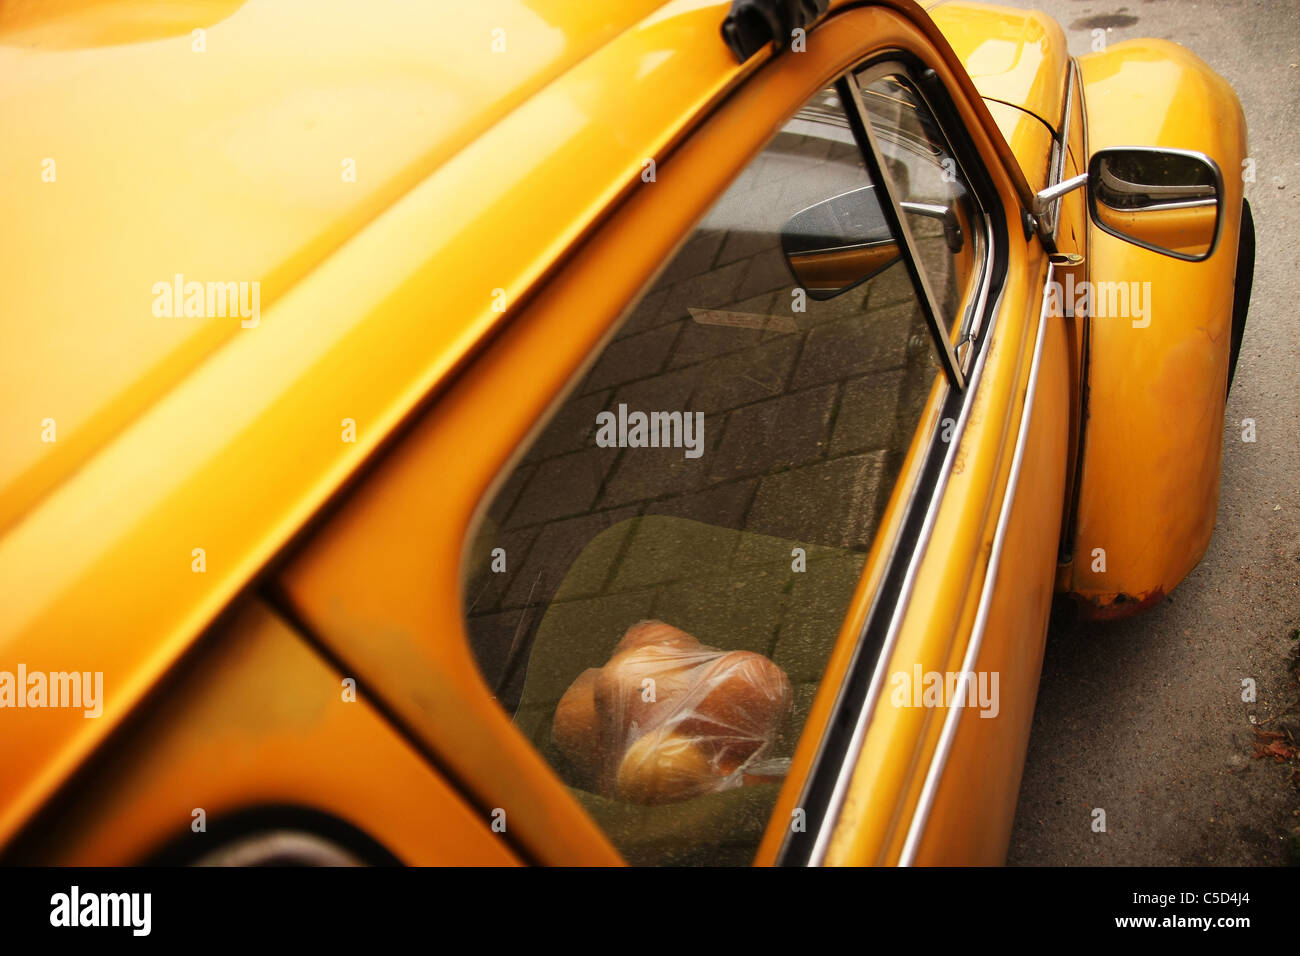 View through window of oranges on yellow vintage Volkswagen seat - Stock Image